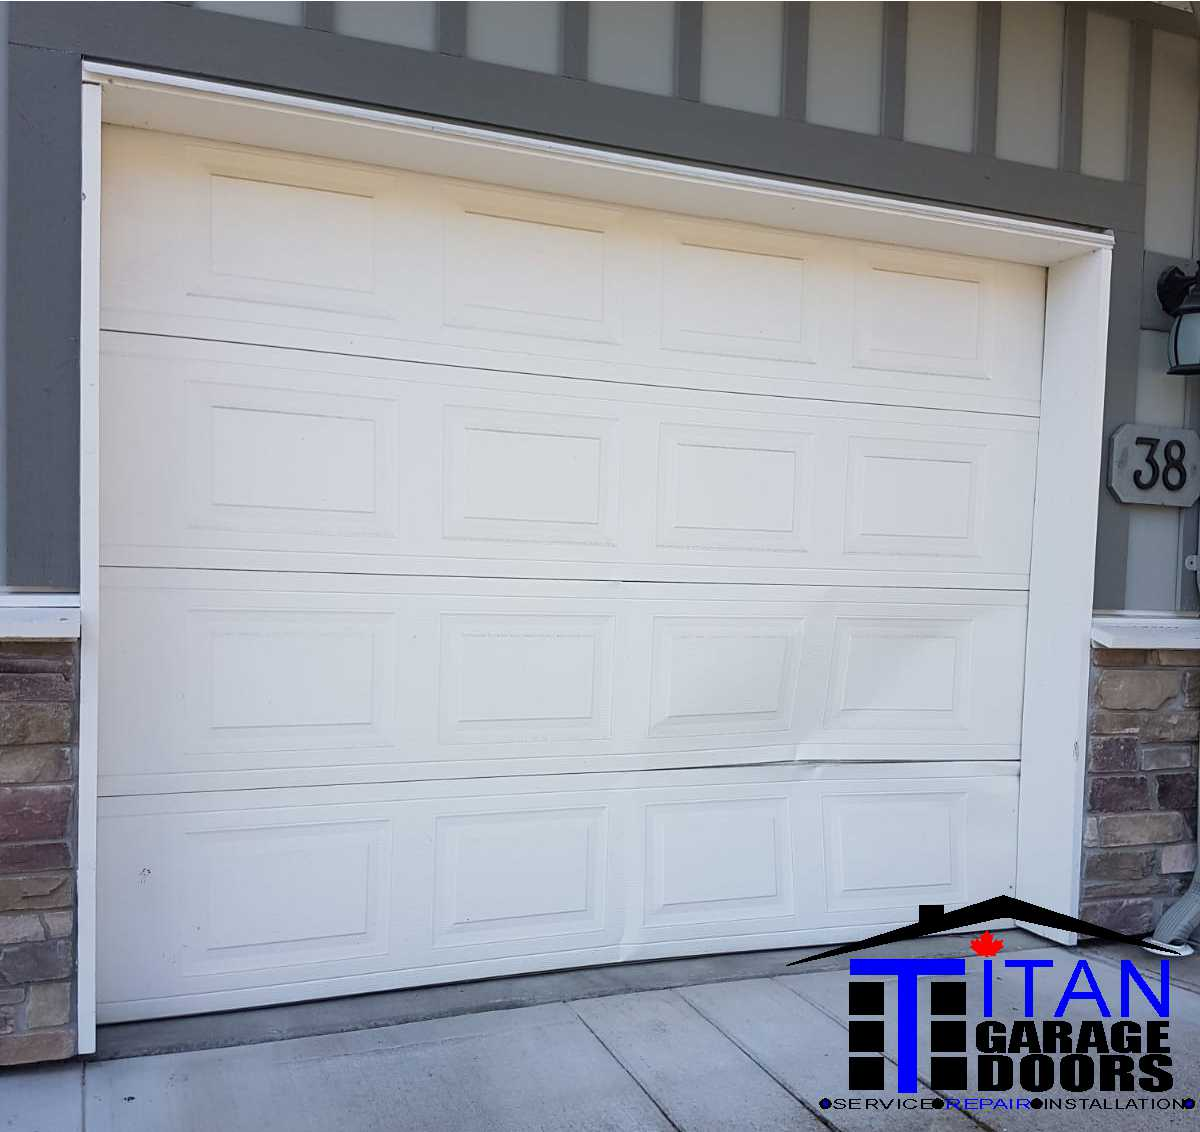 Titan Garage Doors Garage Door Repair And Service 24 7 Same Day Local Family Owned